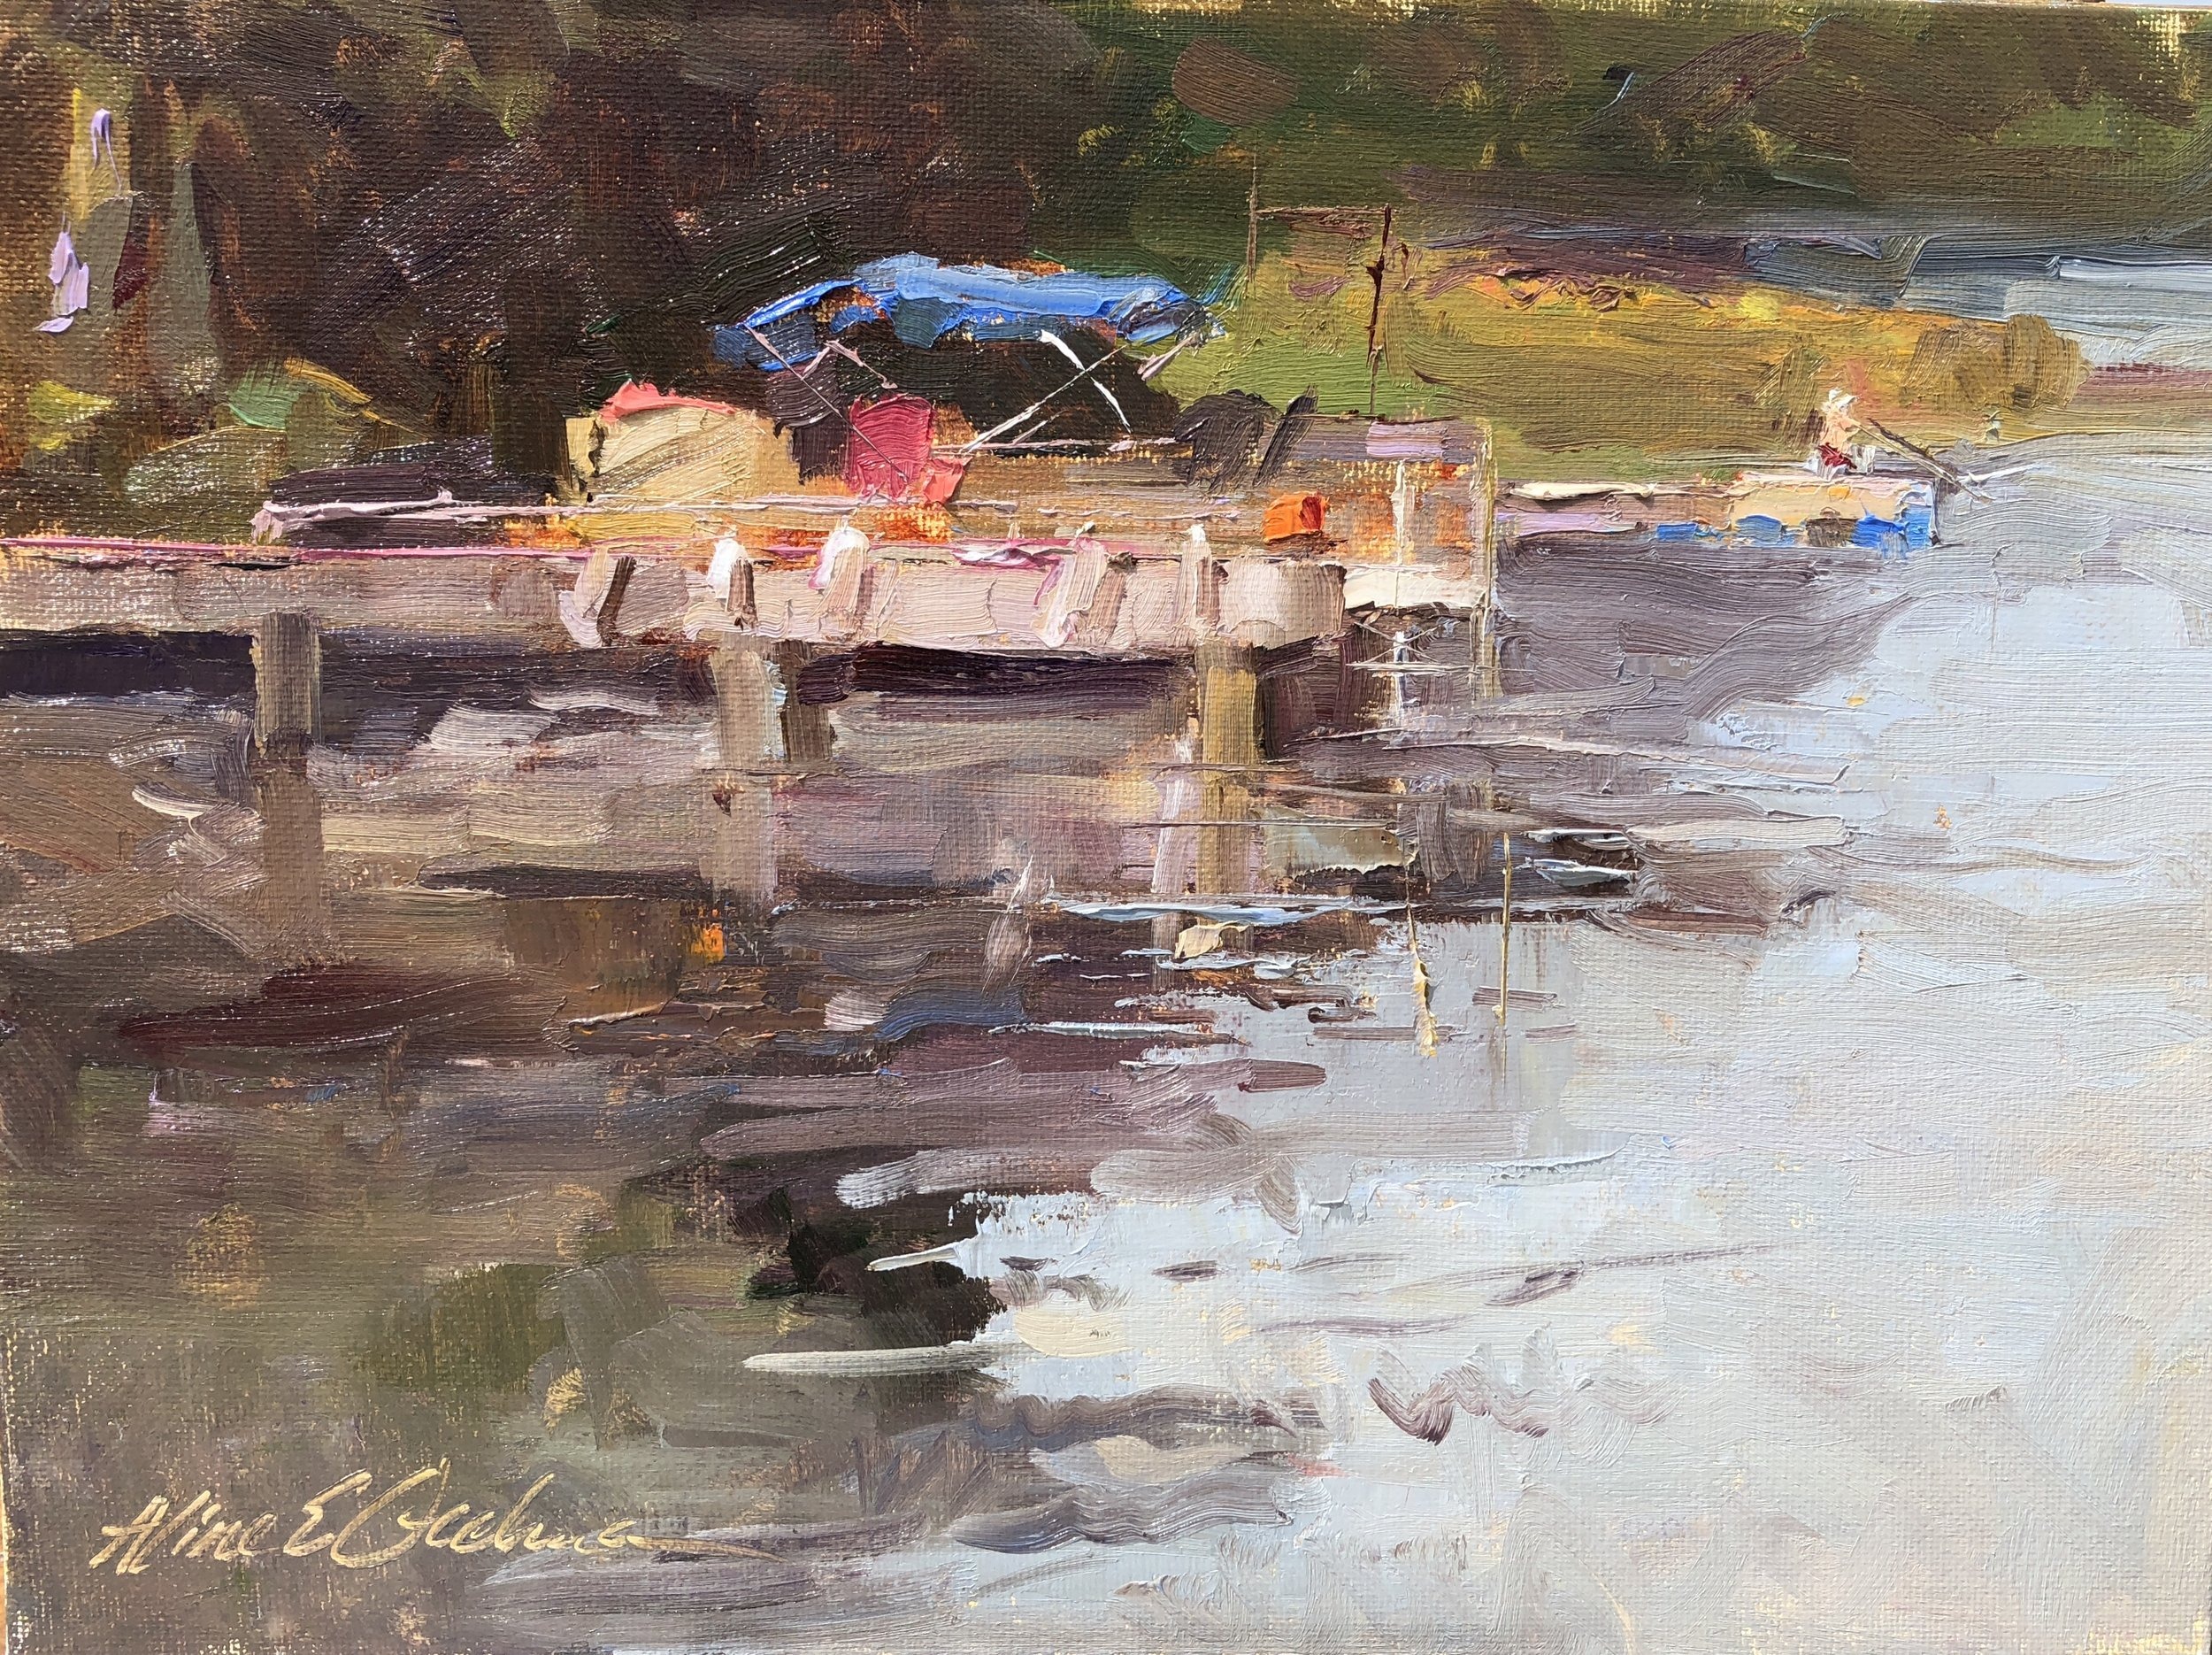 Martin's Pond Pontoon  8 x 11 oil on board